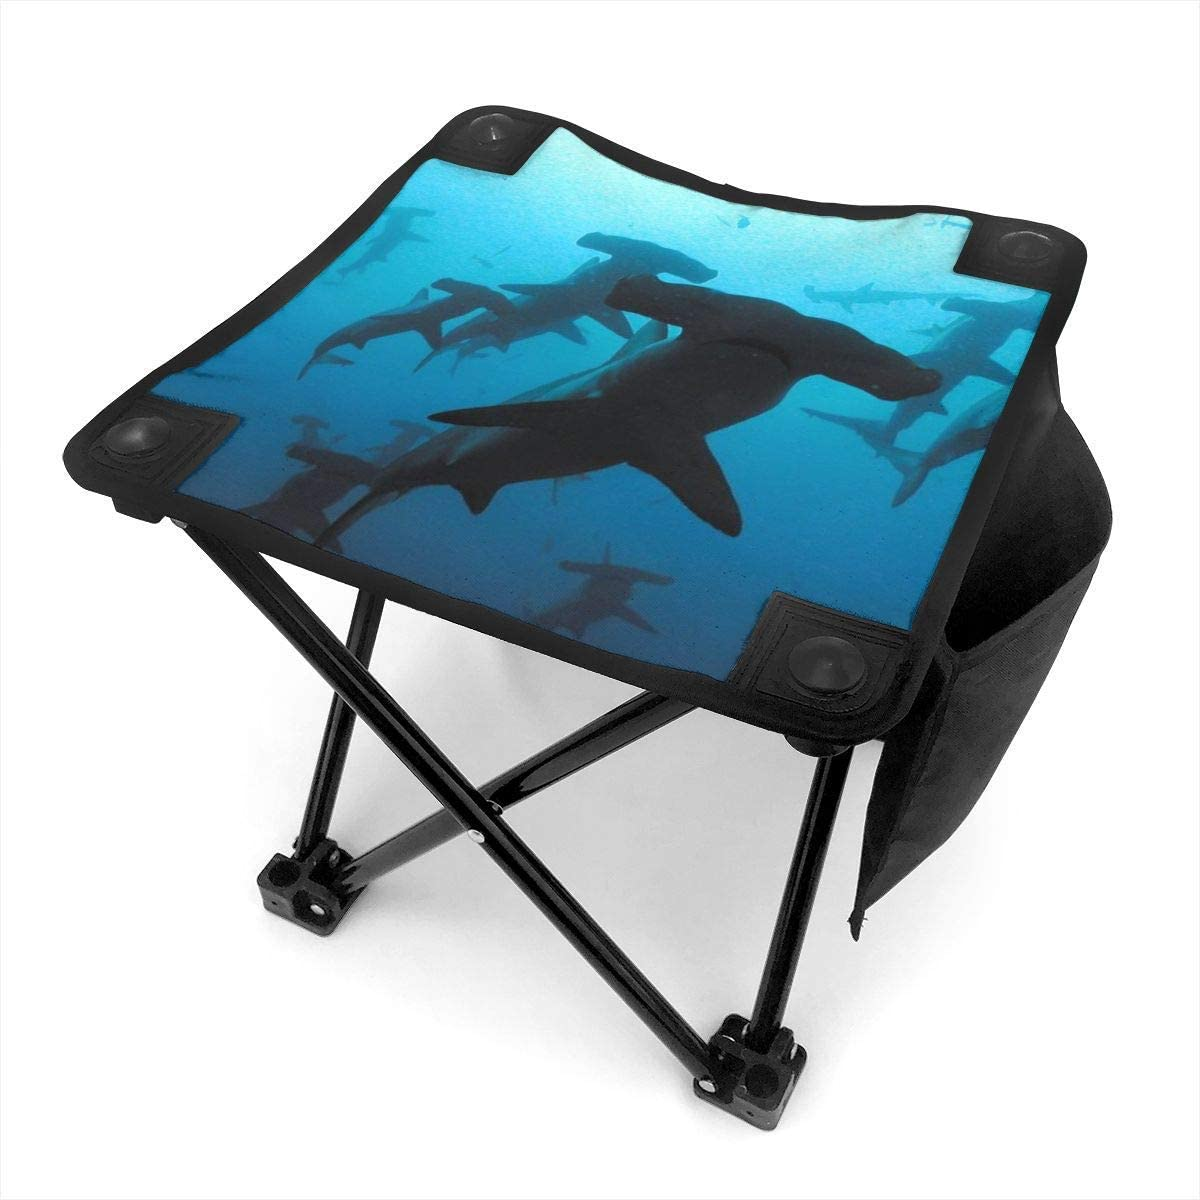 Taburete de camping Shark Under Blue Water Small Camping Stool Fishing Travel Outdoor Folding Stool Portable Oxford Cloth Slacker Stool with Side Pocket for Camping Walking Hunting Hiking Picnic Gard: Amazon.es: Jardín